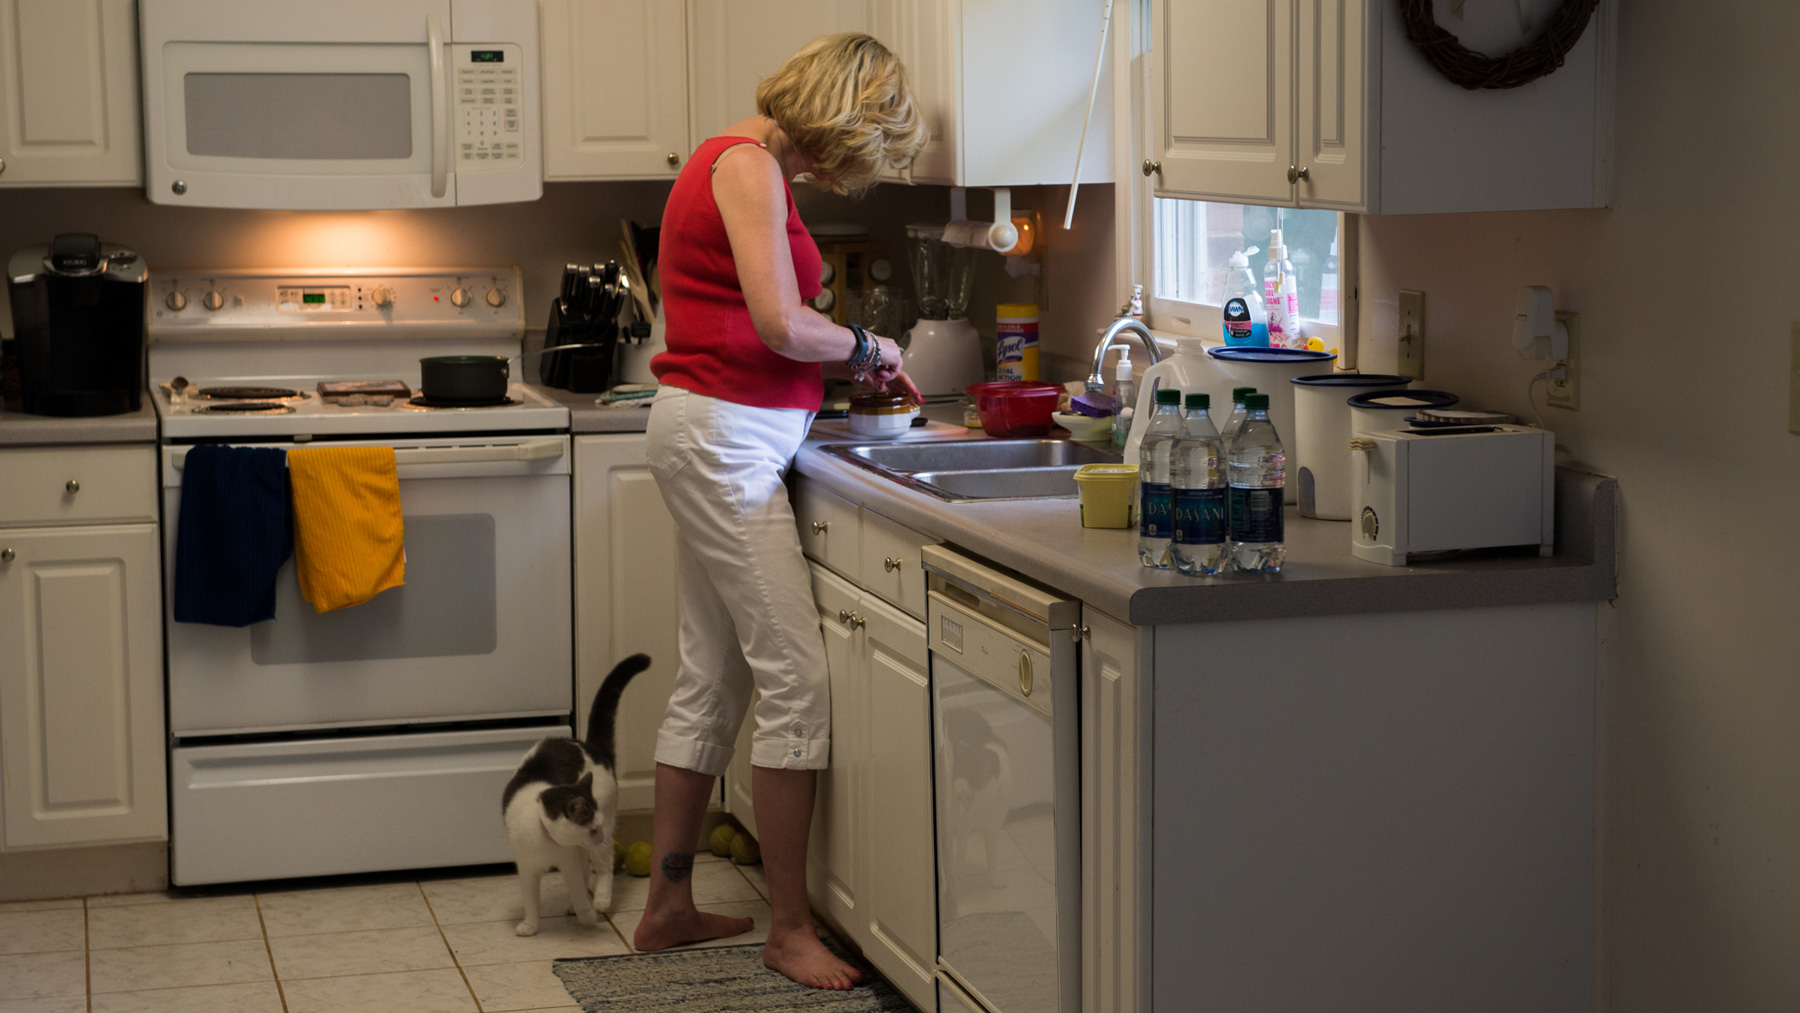 Debbie Baker prepares food in the kitchen of her Belmont, N.C., home. She uses bottled water to drink and cook with. (Chelsea Rae Ybanez/News21)